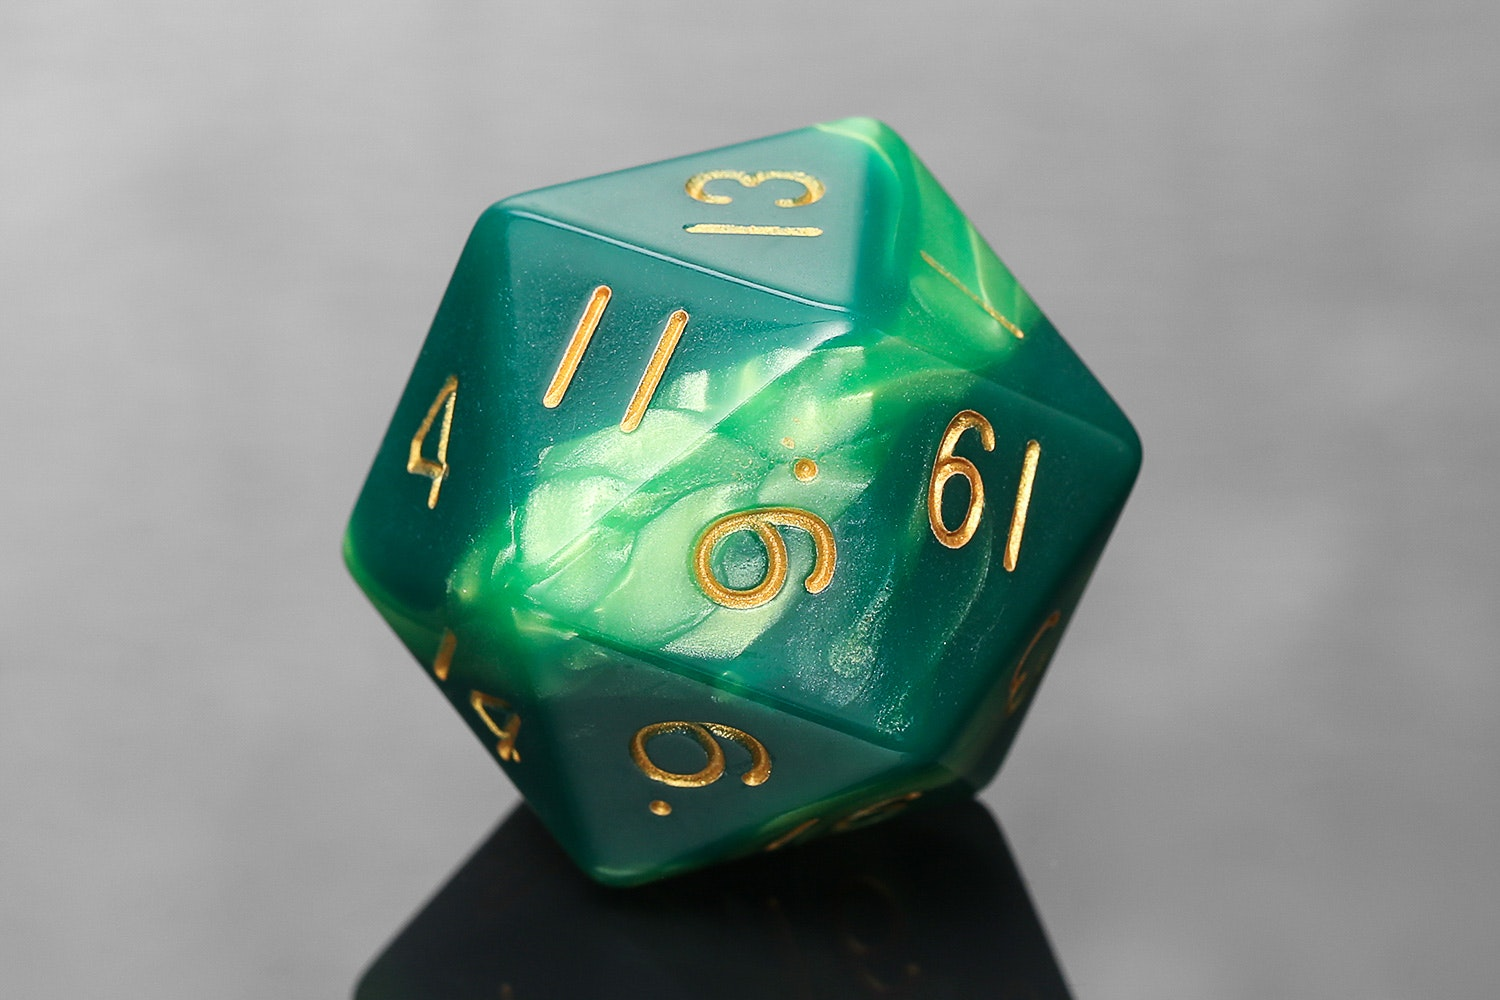 Green/Light Green with Gold Numbers